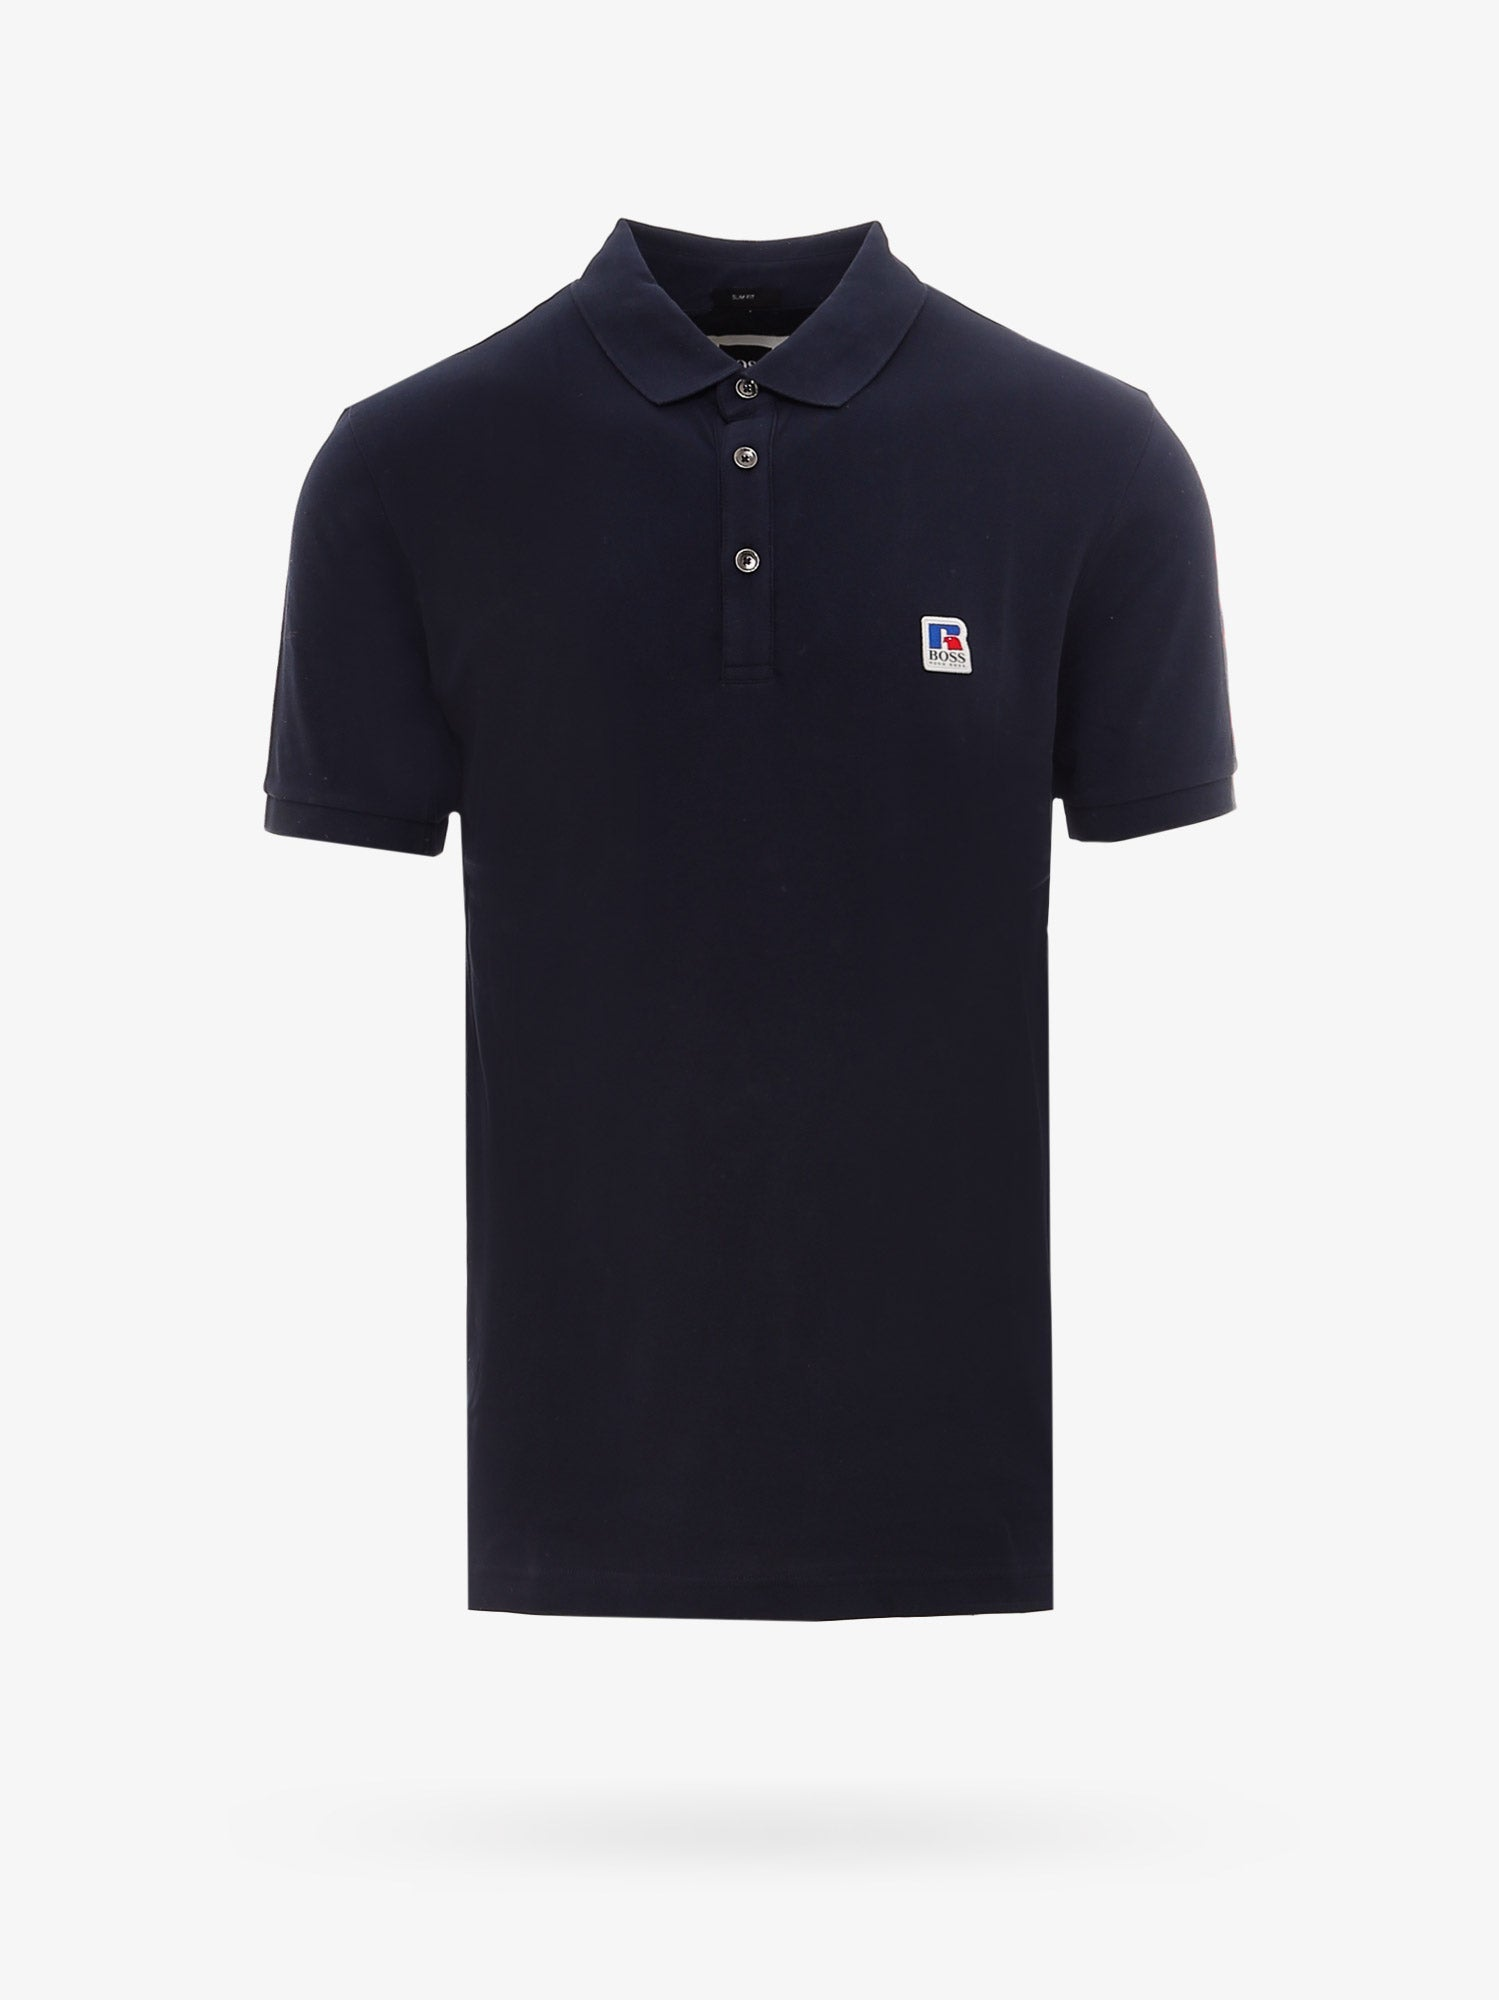 POLO SHIRT X RUSSEL ATHLETIC